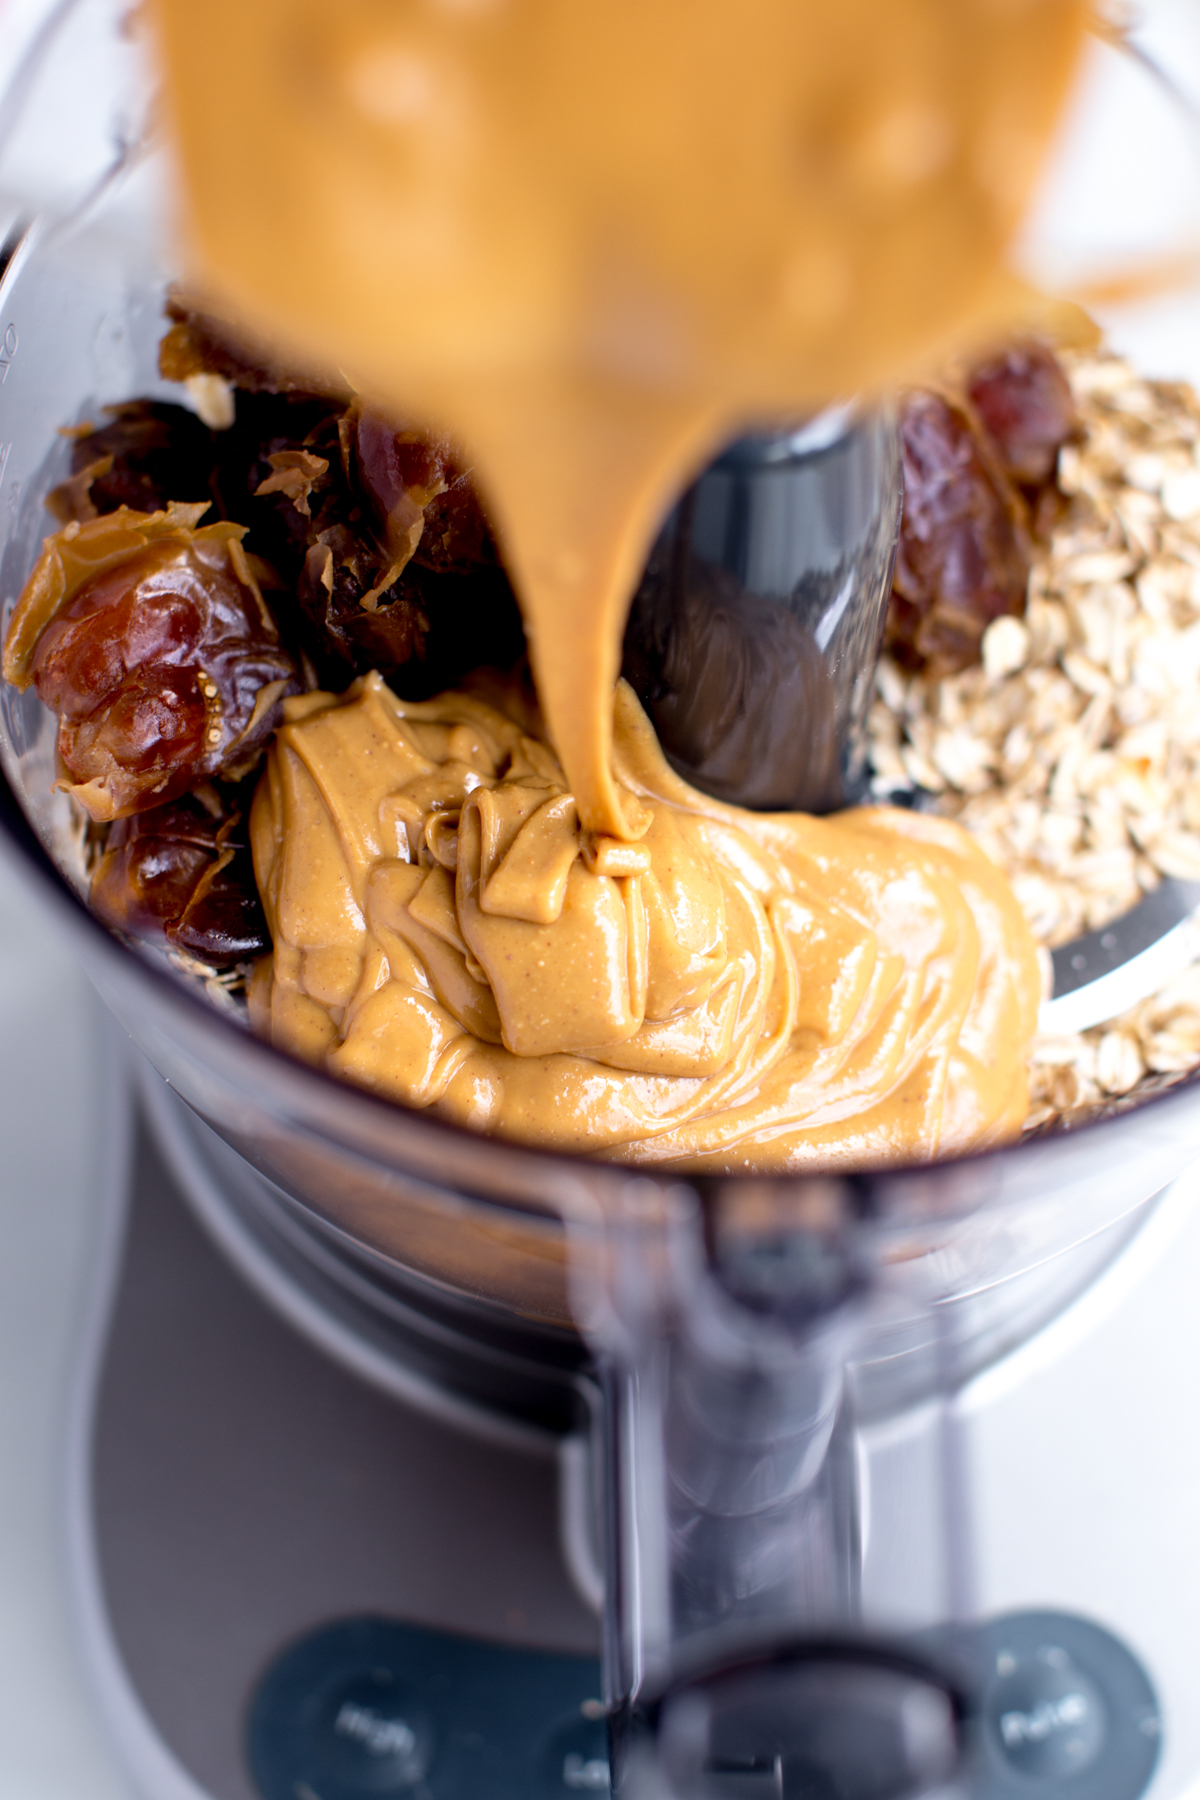 ingredients for no-bake peanut butter snack bite cookie dough in food processor with peanut butter drizzle